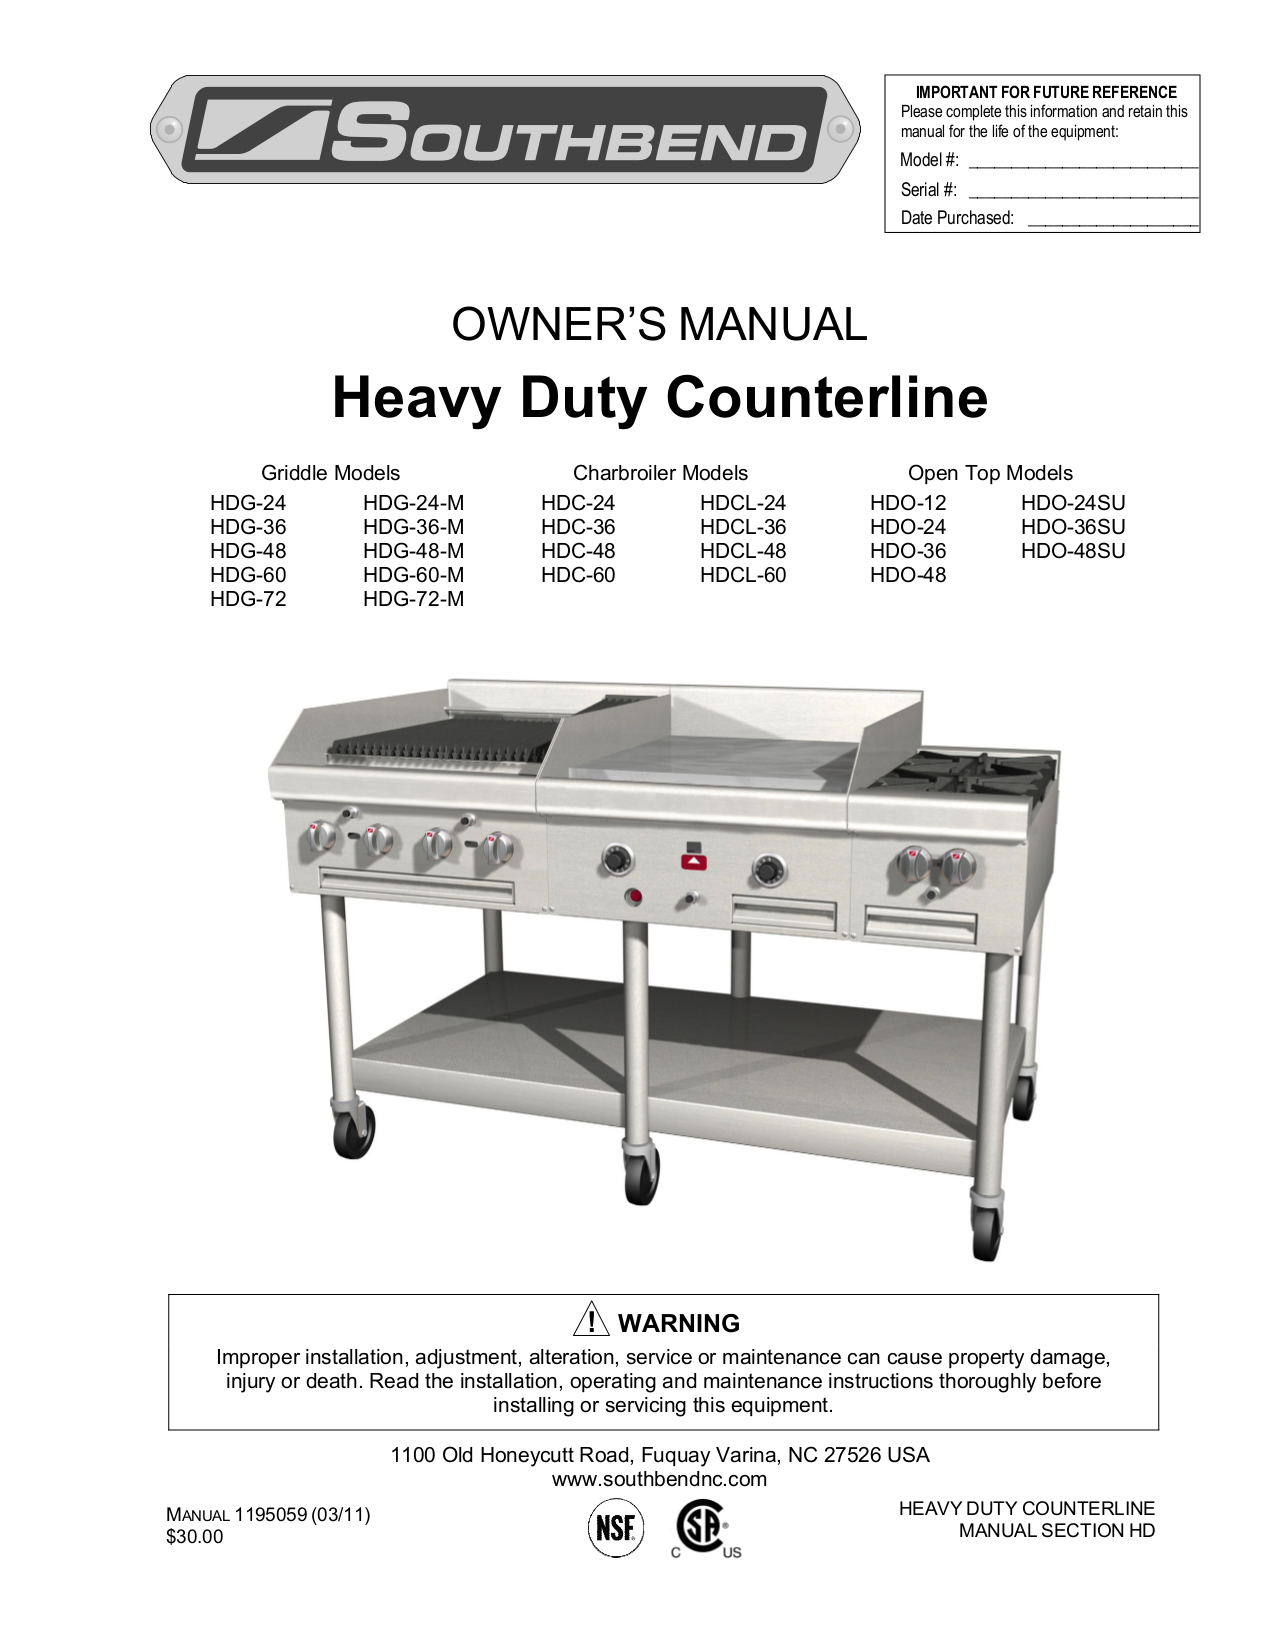 pdf for Southbend Other HDO-24SU Countertops manual